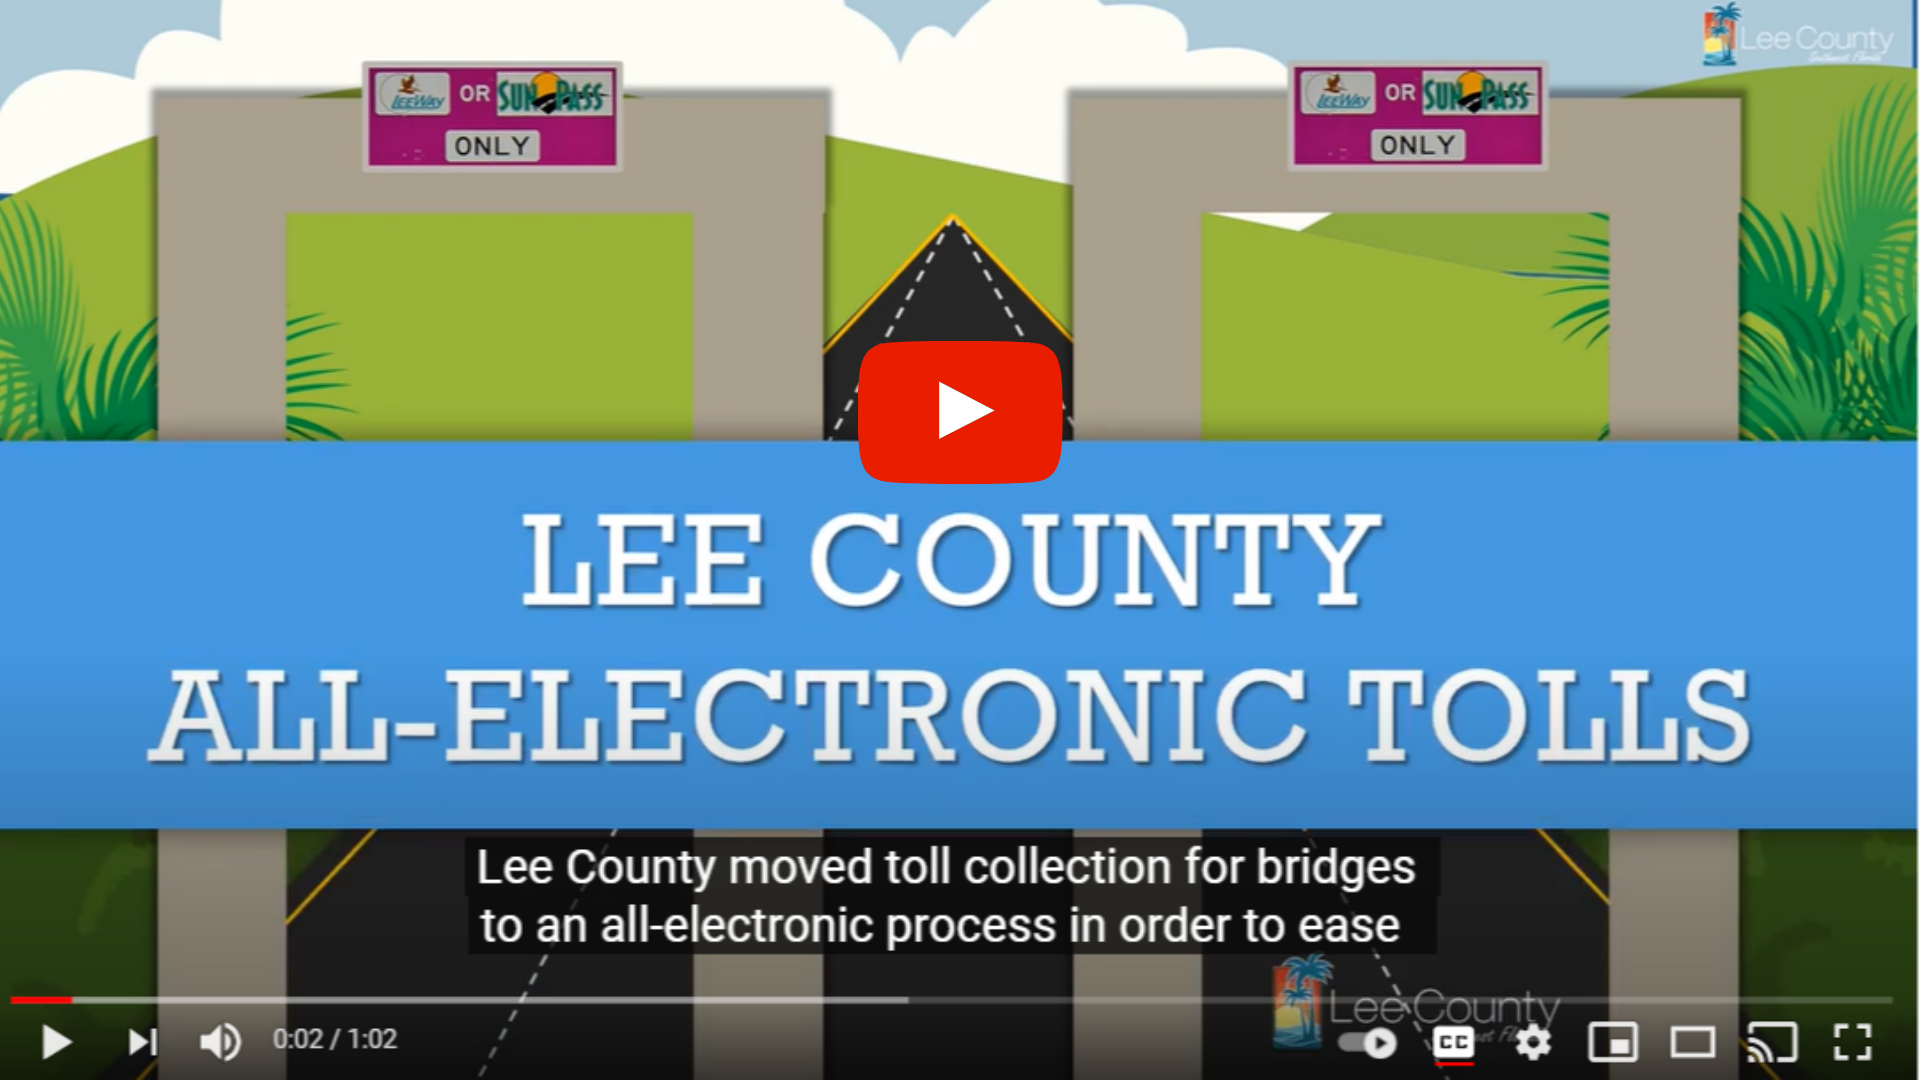 Lee County All-Electronic Tolls